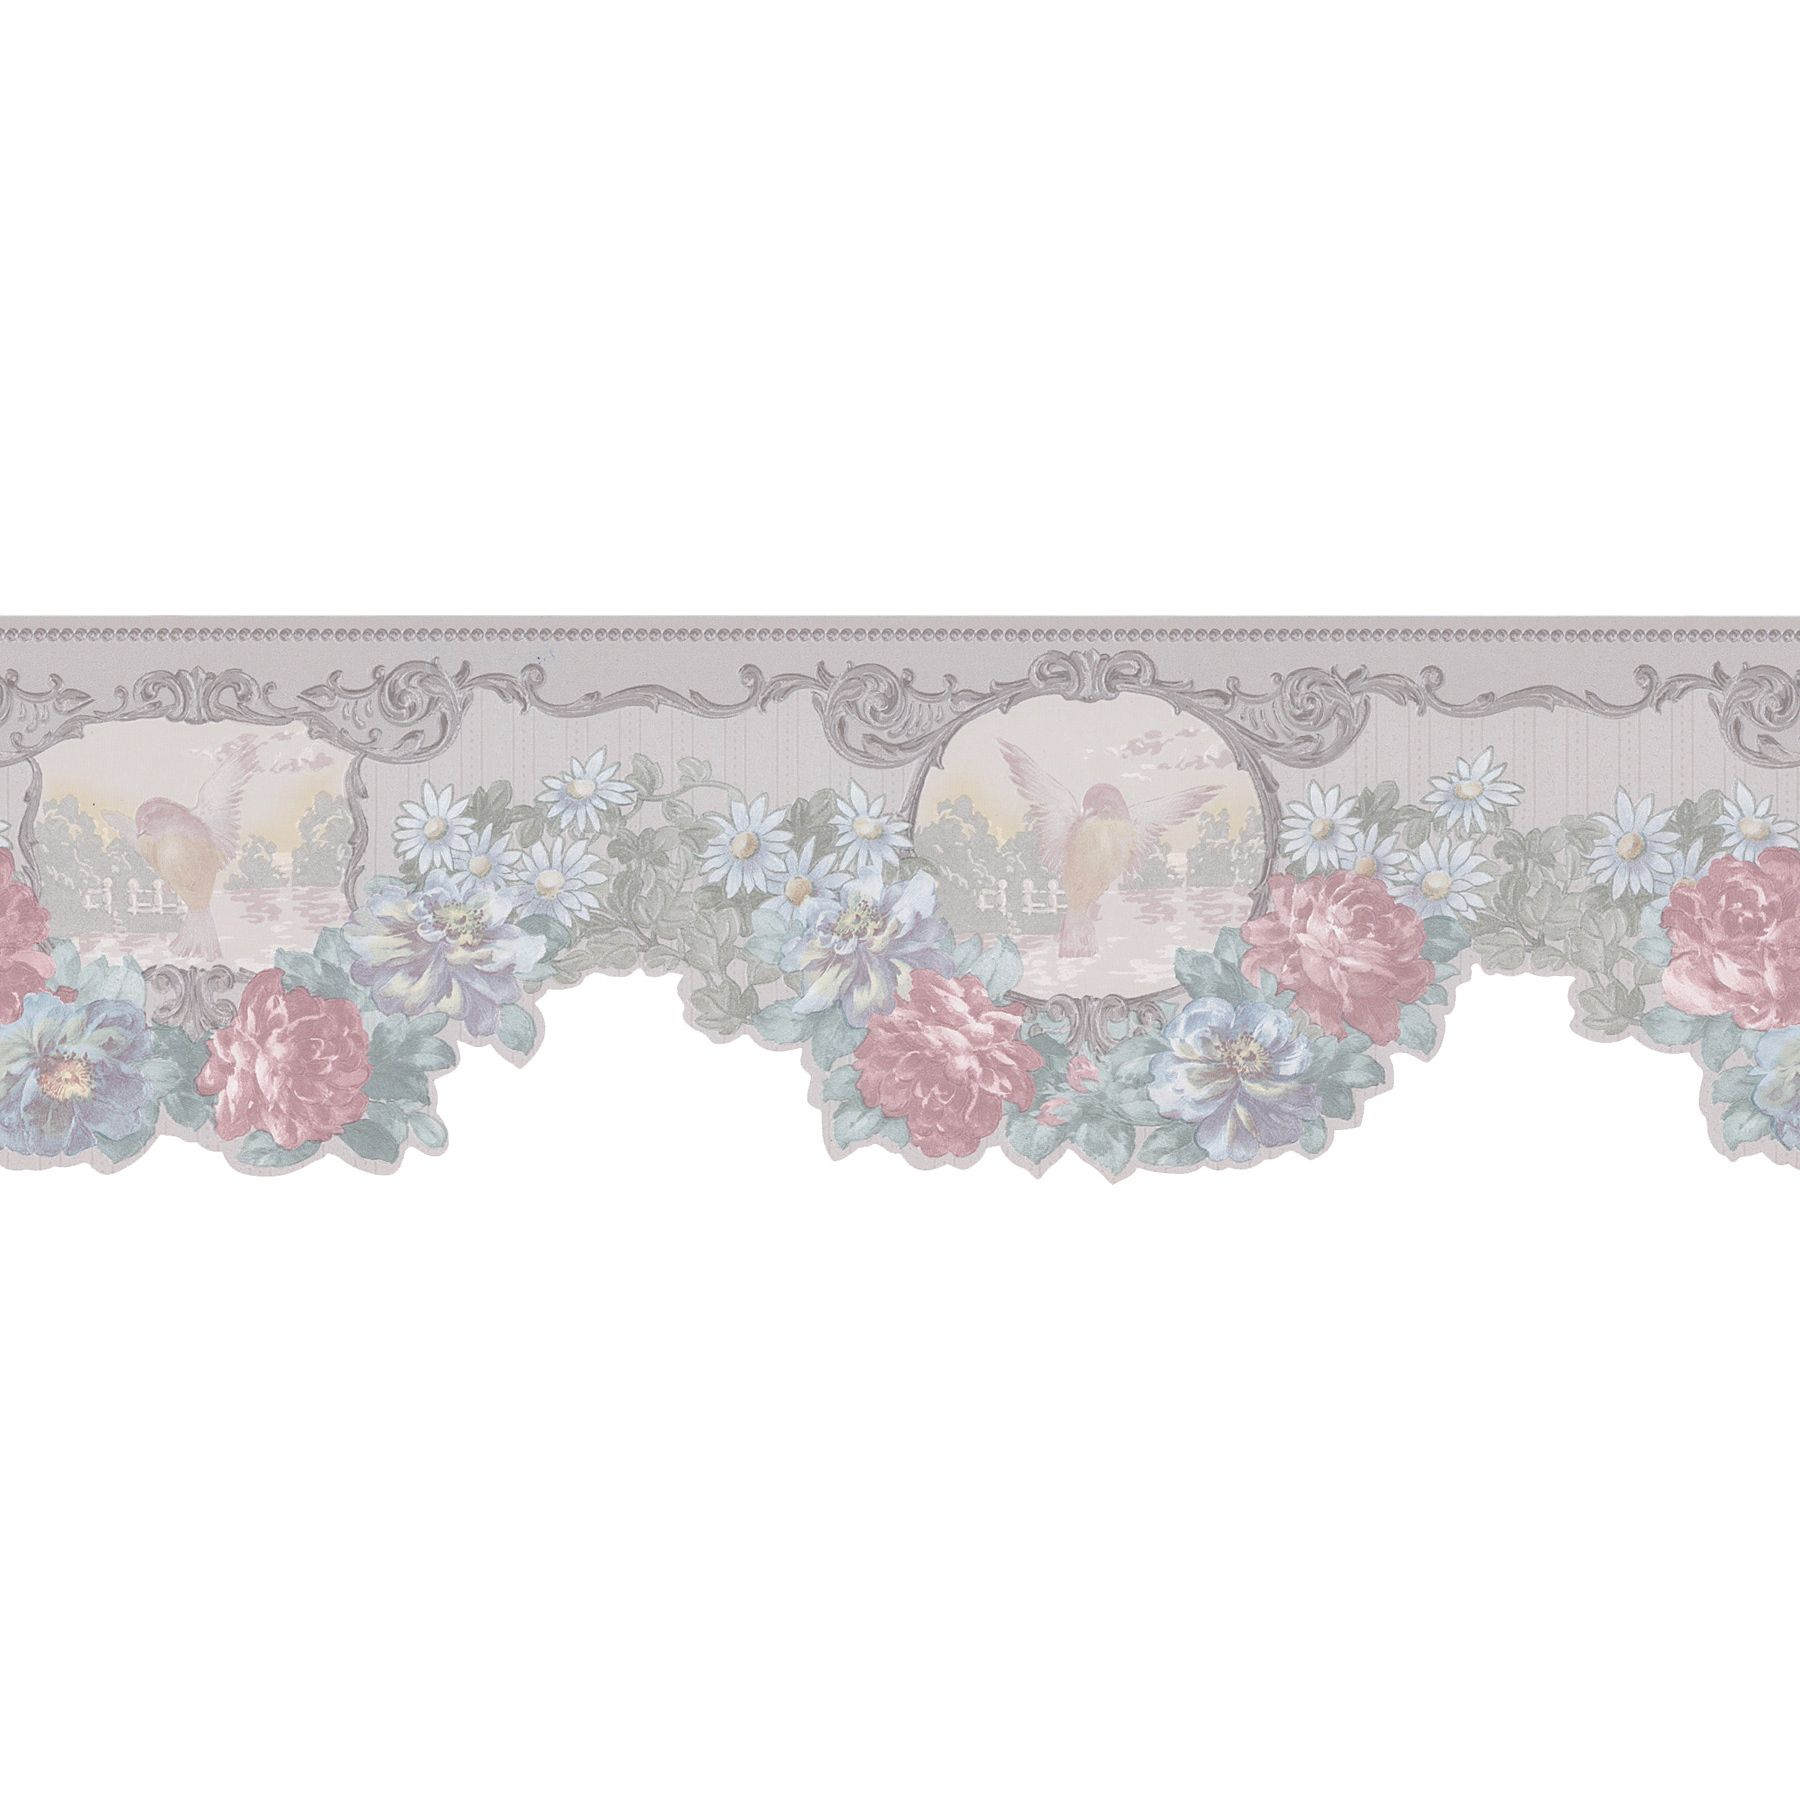 This gorgeous floral wallpaper border will bring effortless beauty